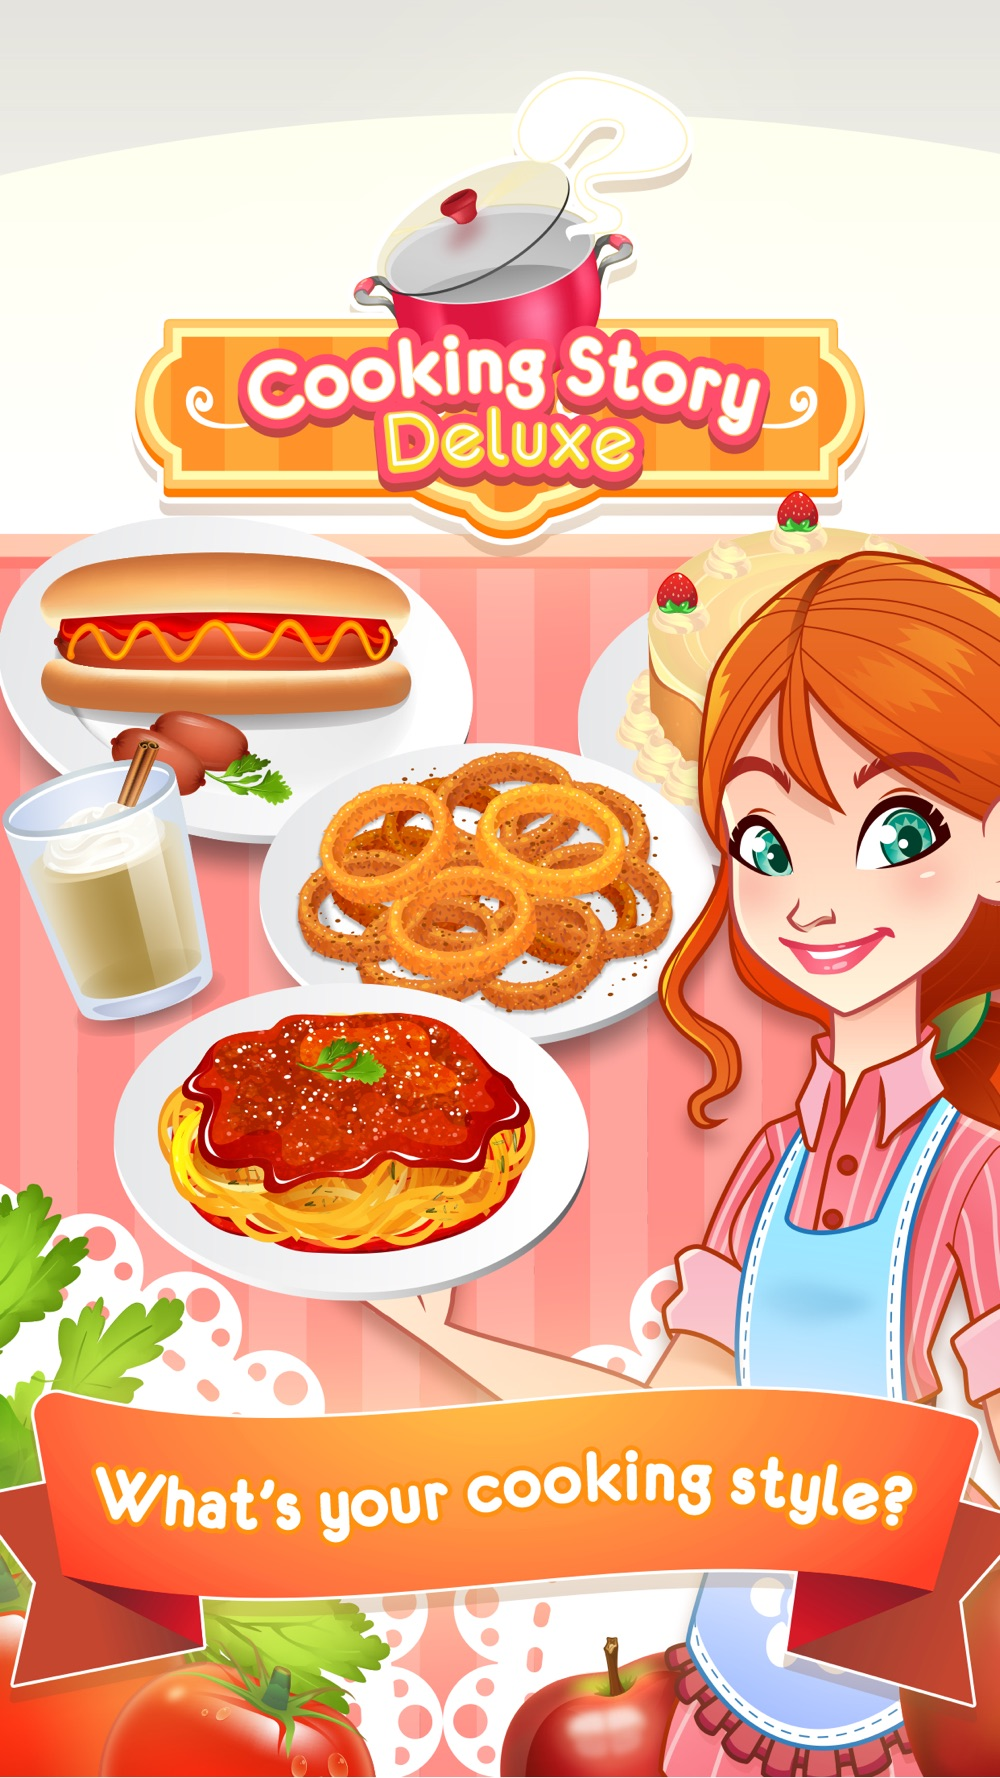 Cooking Story Deluxe – Fun Cooking Games Cheat Codes